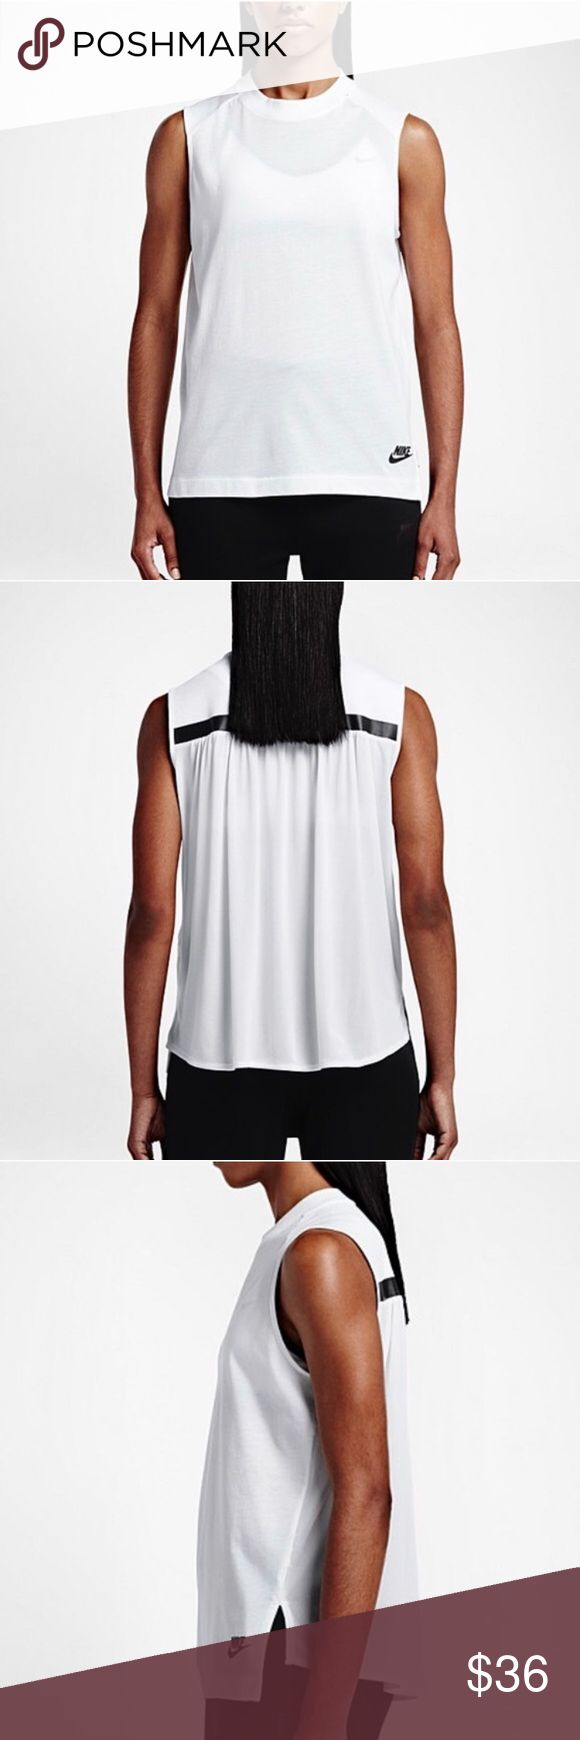 NIKE HIGH NECK WORKOUT TANK Nike sportswear workout tank. So great with high fashion neck and drape back detail. Reverse high low hem and loose fit! Nike Tops